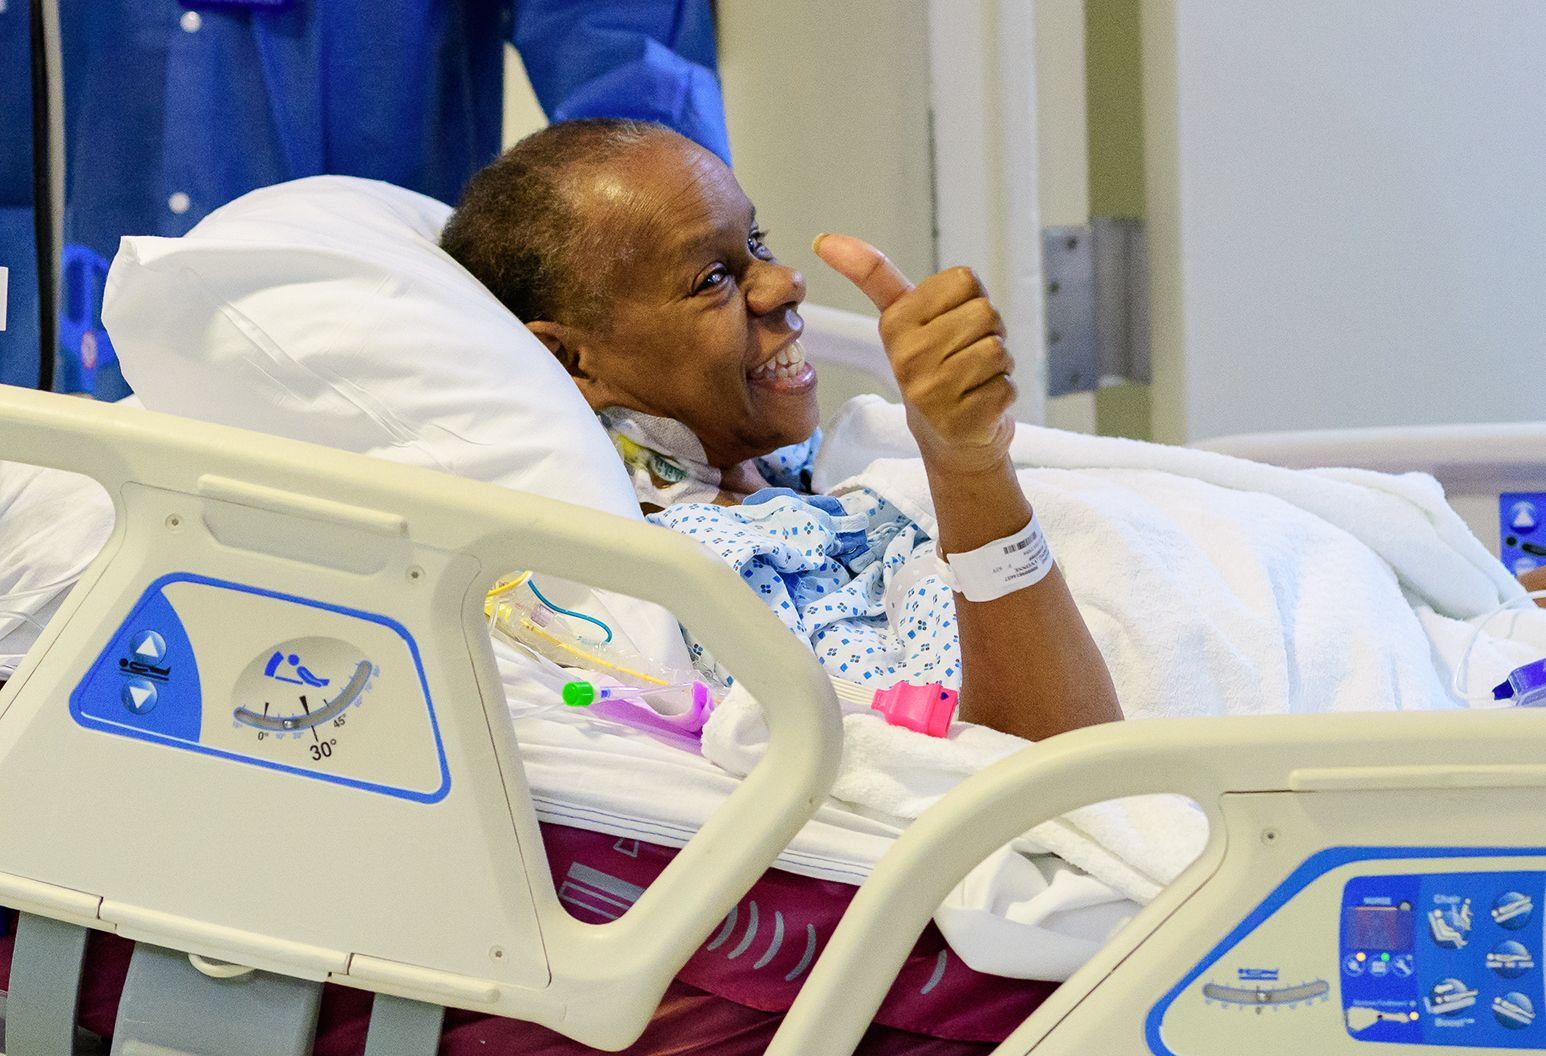 A smiling elderly woman in a hospital bed gives a thumbs up.